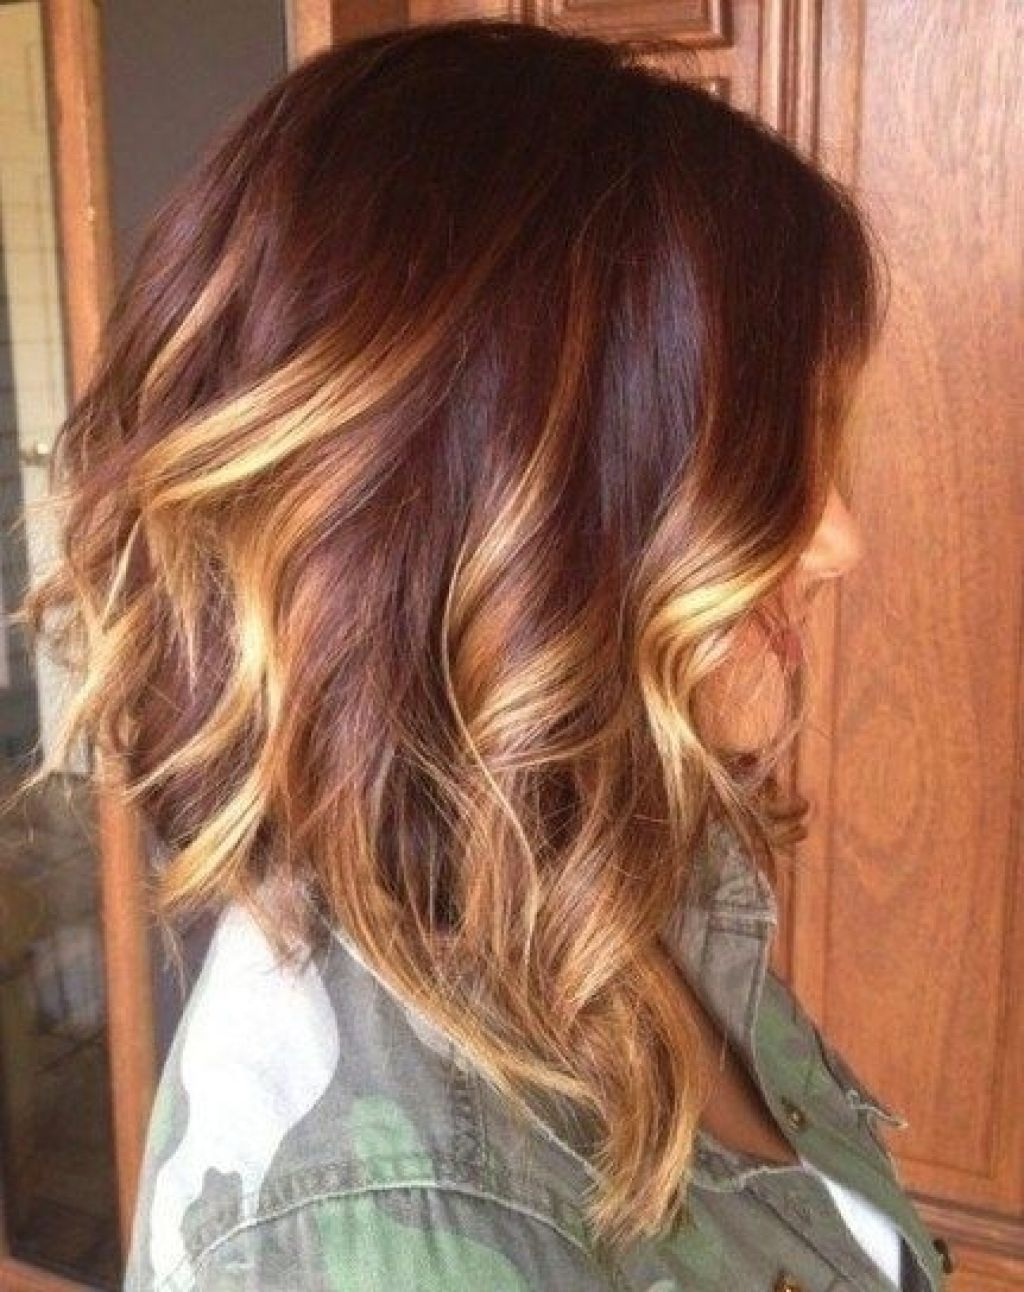 Famous Shoulder Length Ombre Blonde Hairstyles Throughout Appealing With Blond Highlights Ombre Hair Medium Length Hairstyles (View 6 of 20)